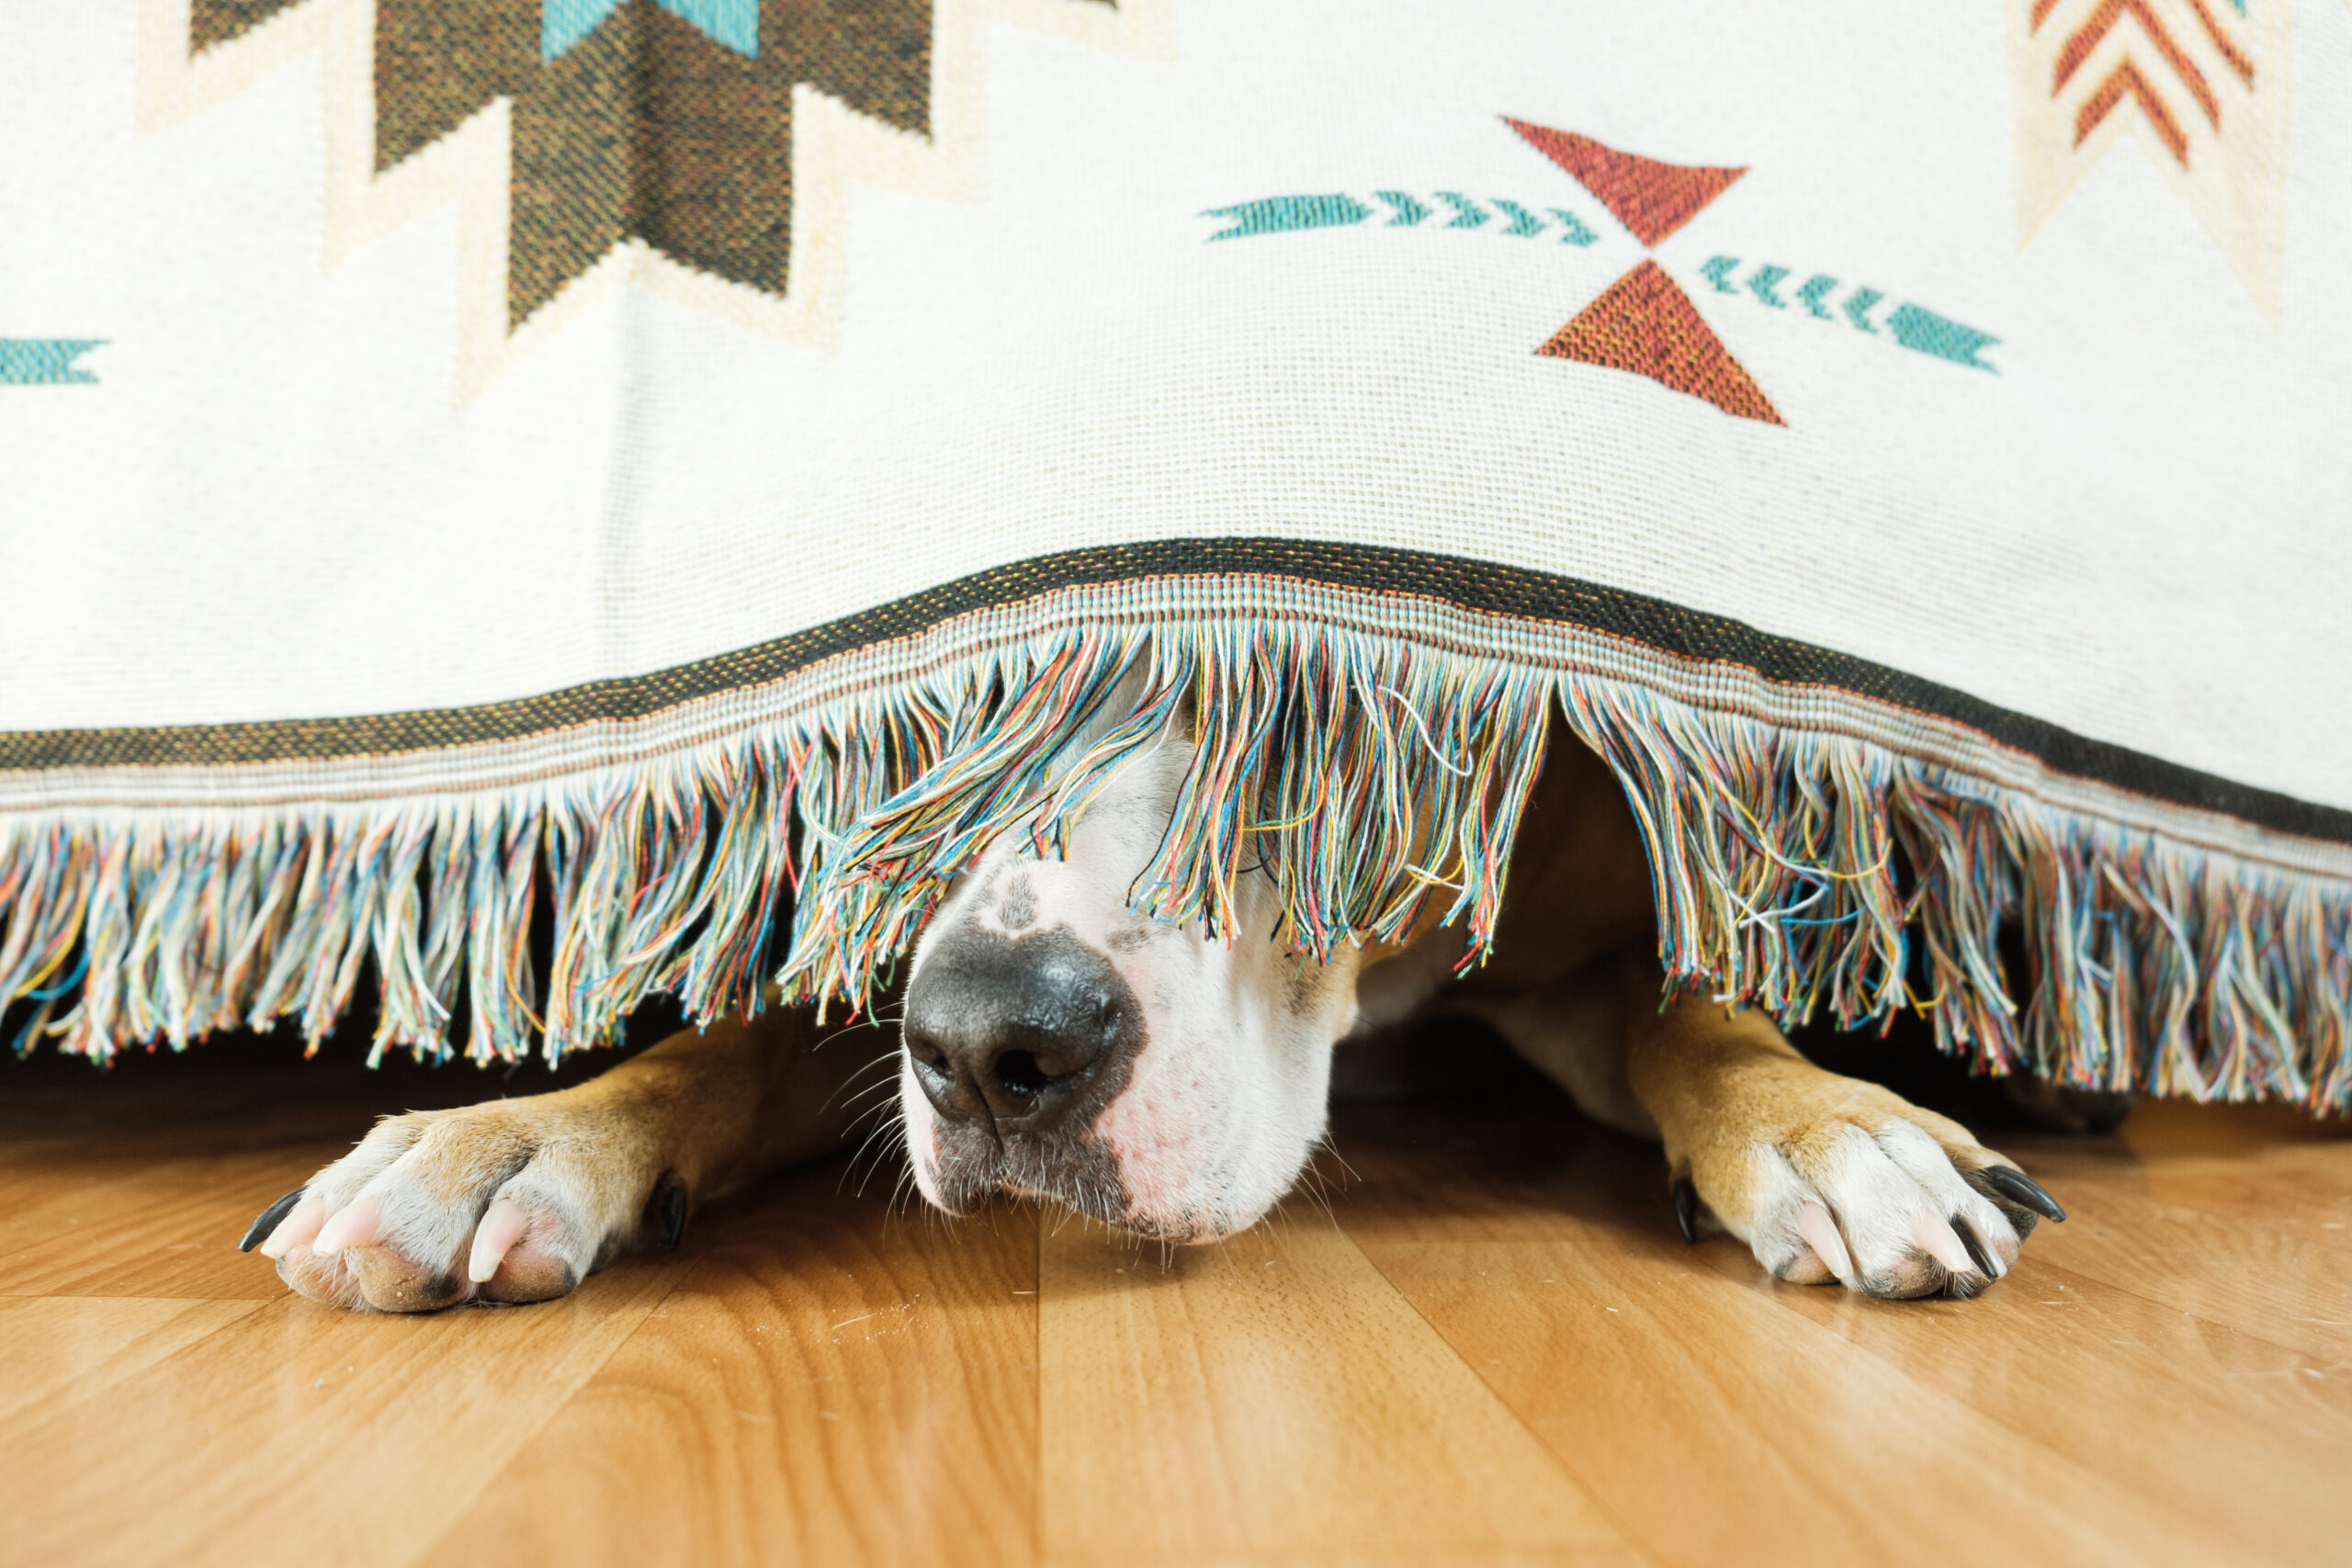 Clues Your Senior Pet May Be Suffering Signs of Dog Dementia – Start Early Treatment for Best Results!